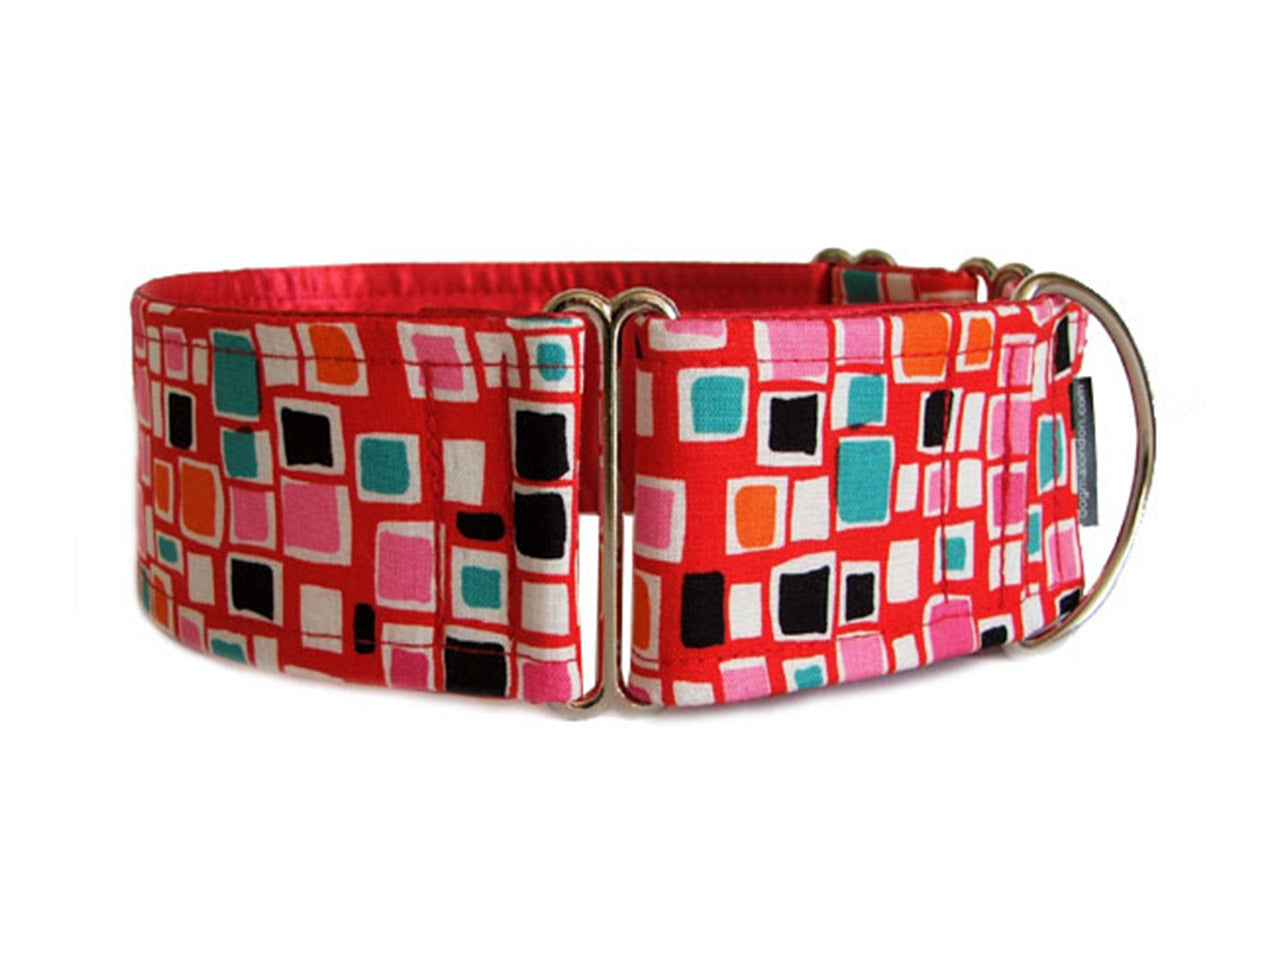 Pops of color on bright red make a snazzy accessory for any fashion-forward hound!